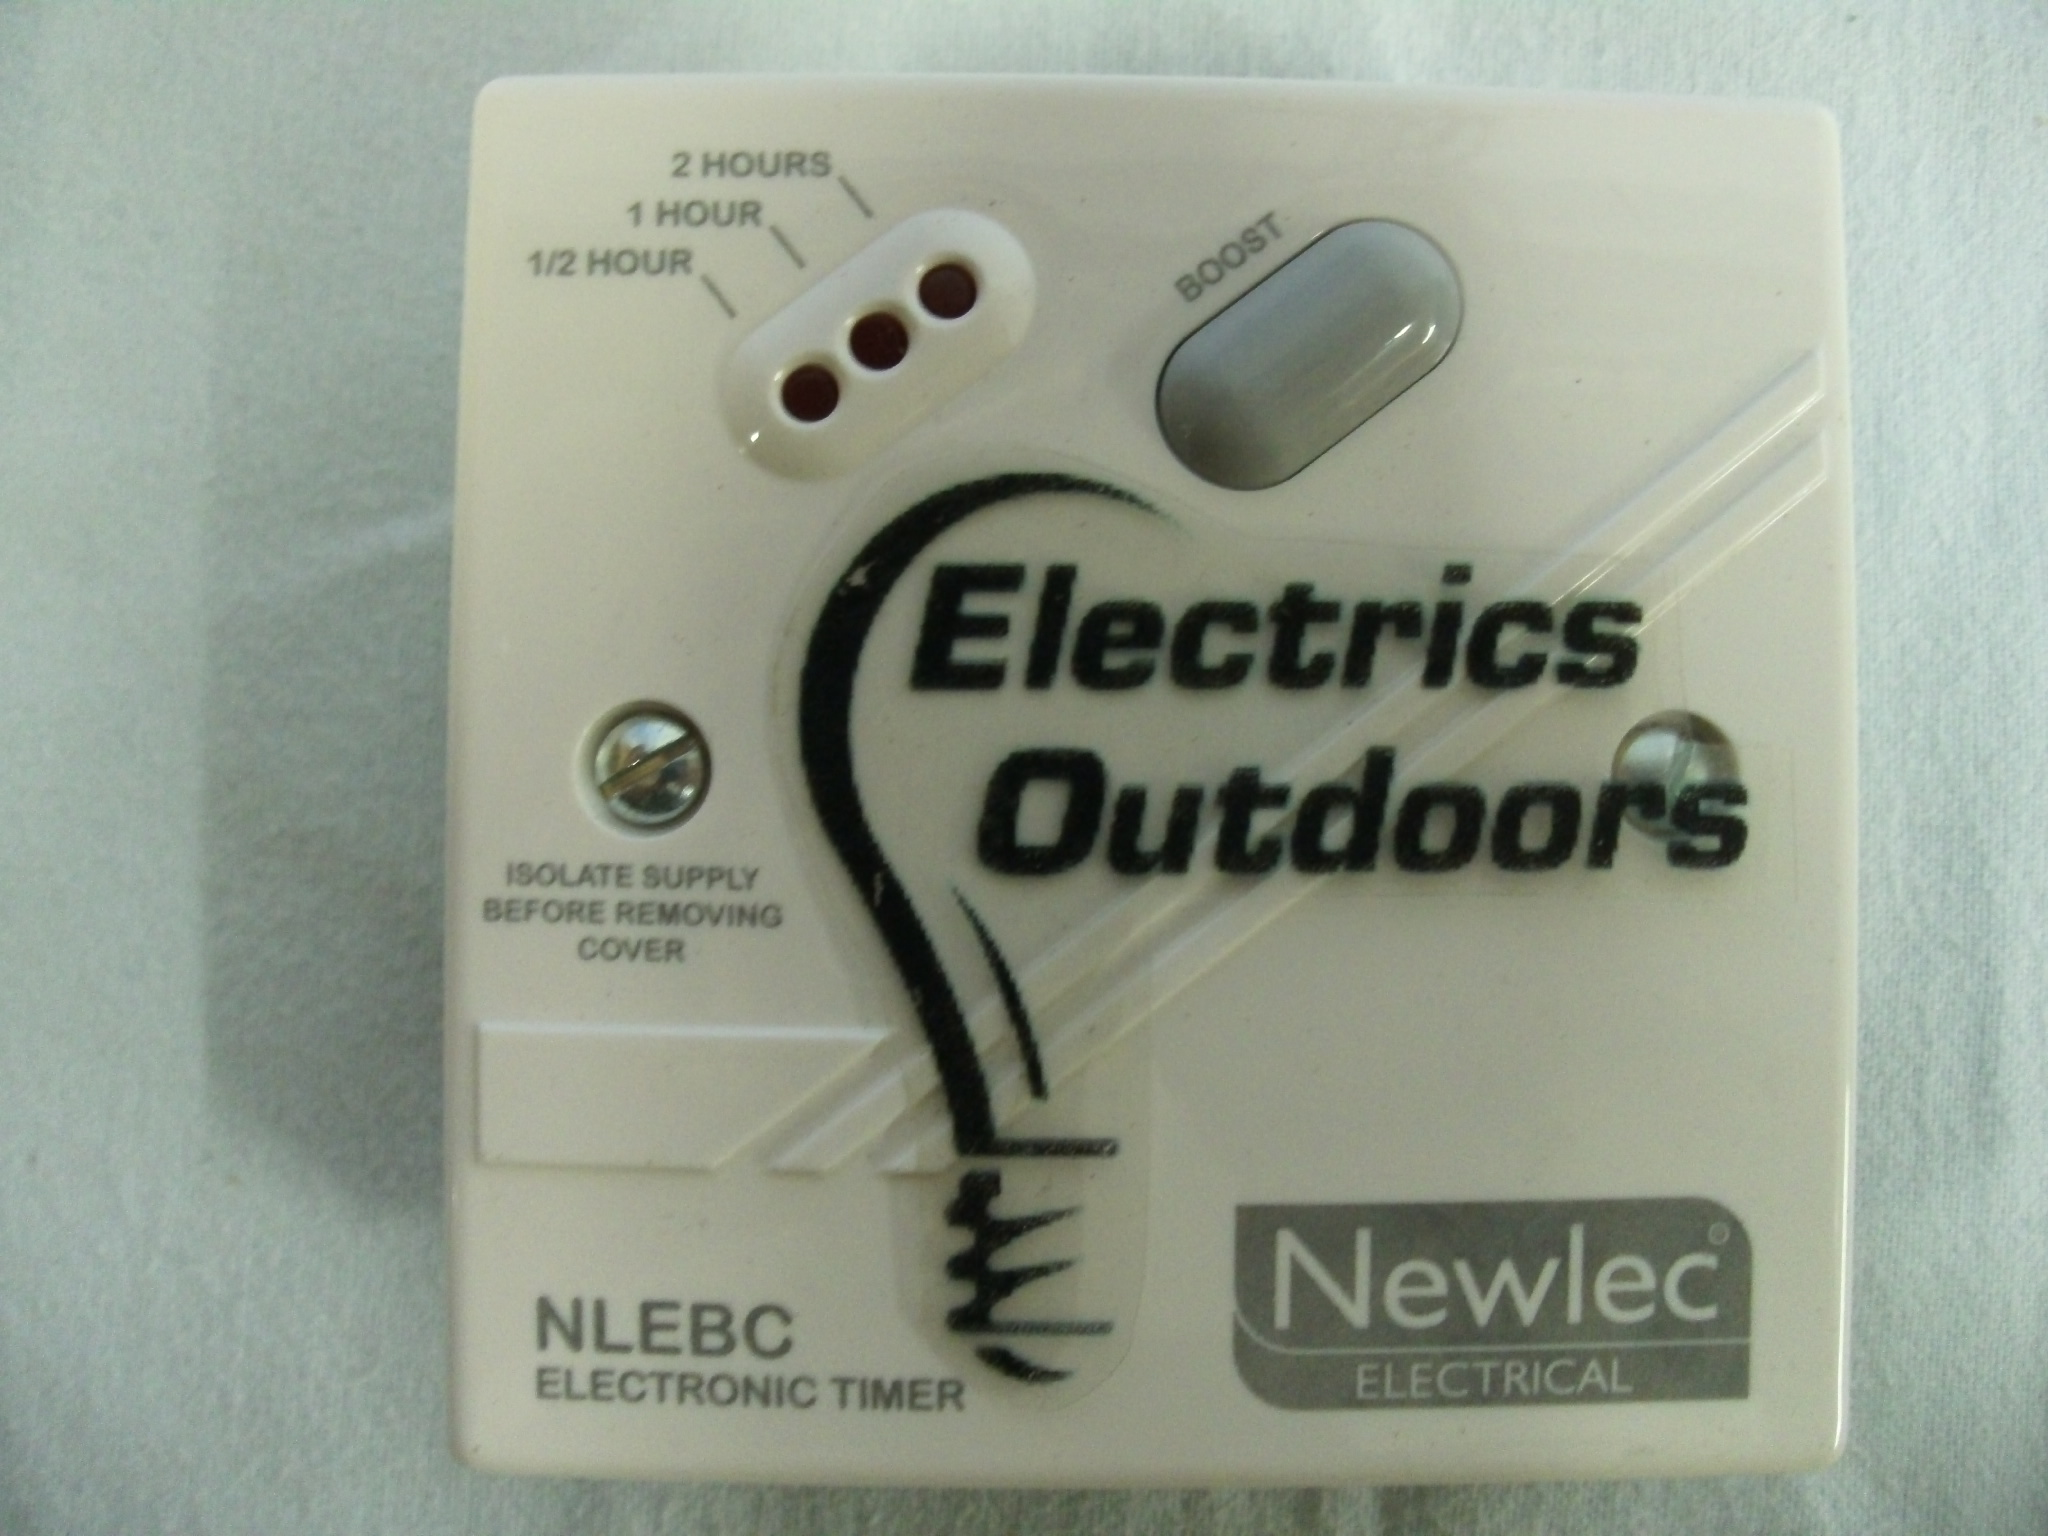 NEWLEC 3 kW BOOST CONTROL TIMESWITCH 30 60 AND 120 MINUTES NLEBC